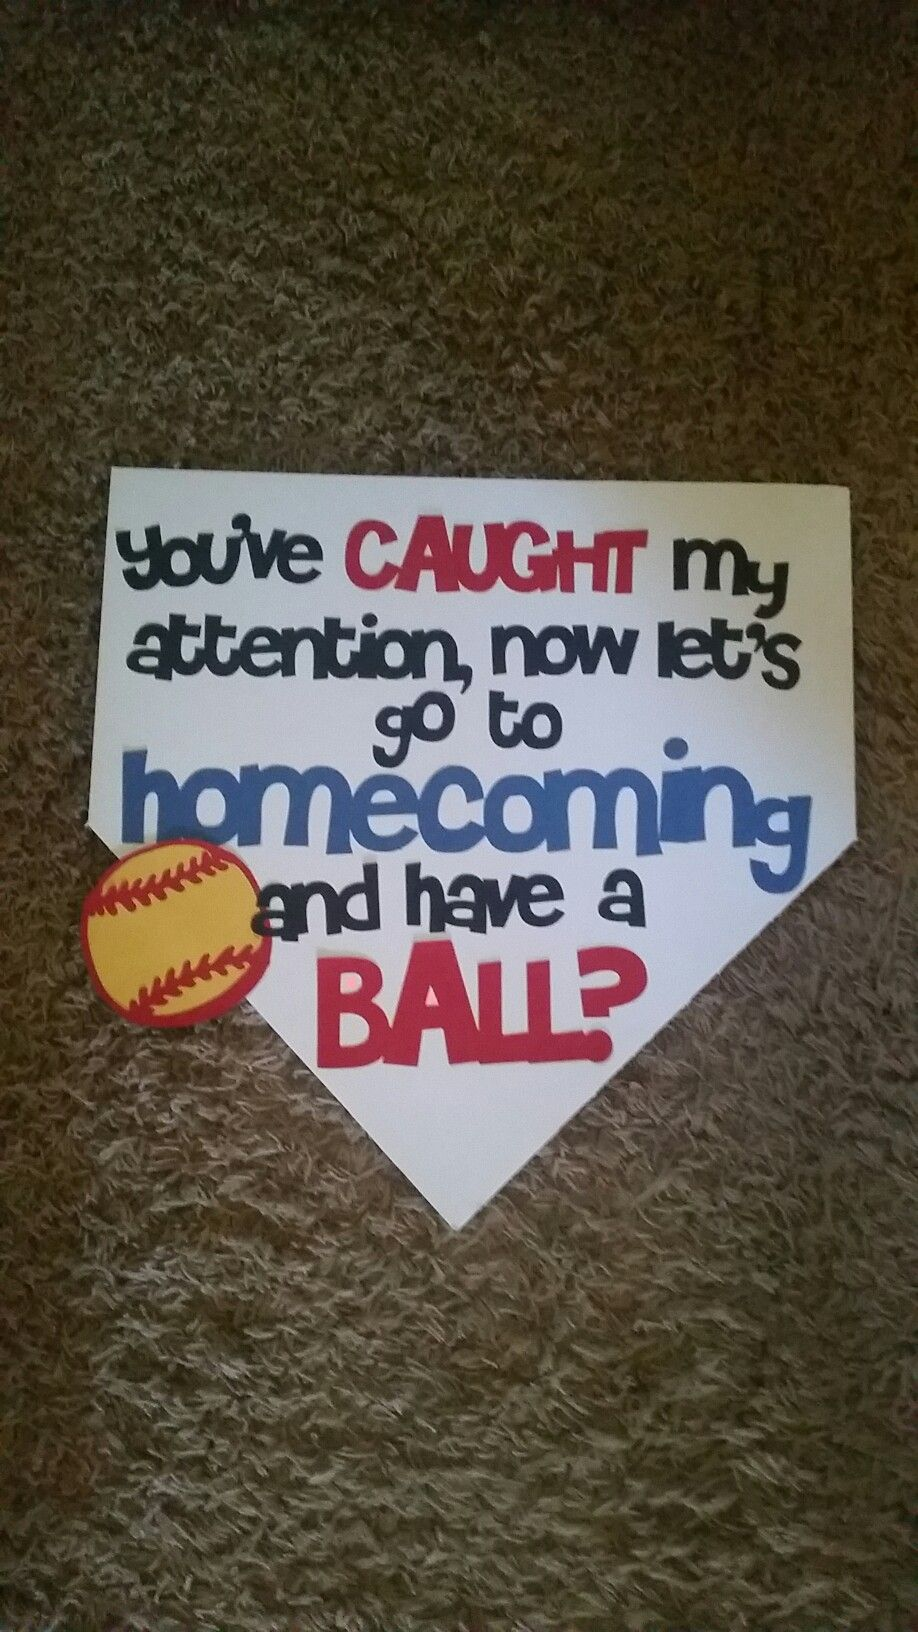 Softball homecoming proposal                                                                                                                                                                                 More #hocoproposalsideasboyfriends